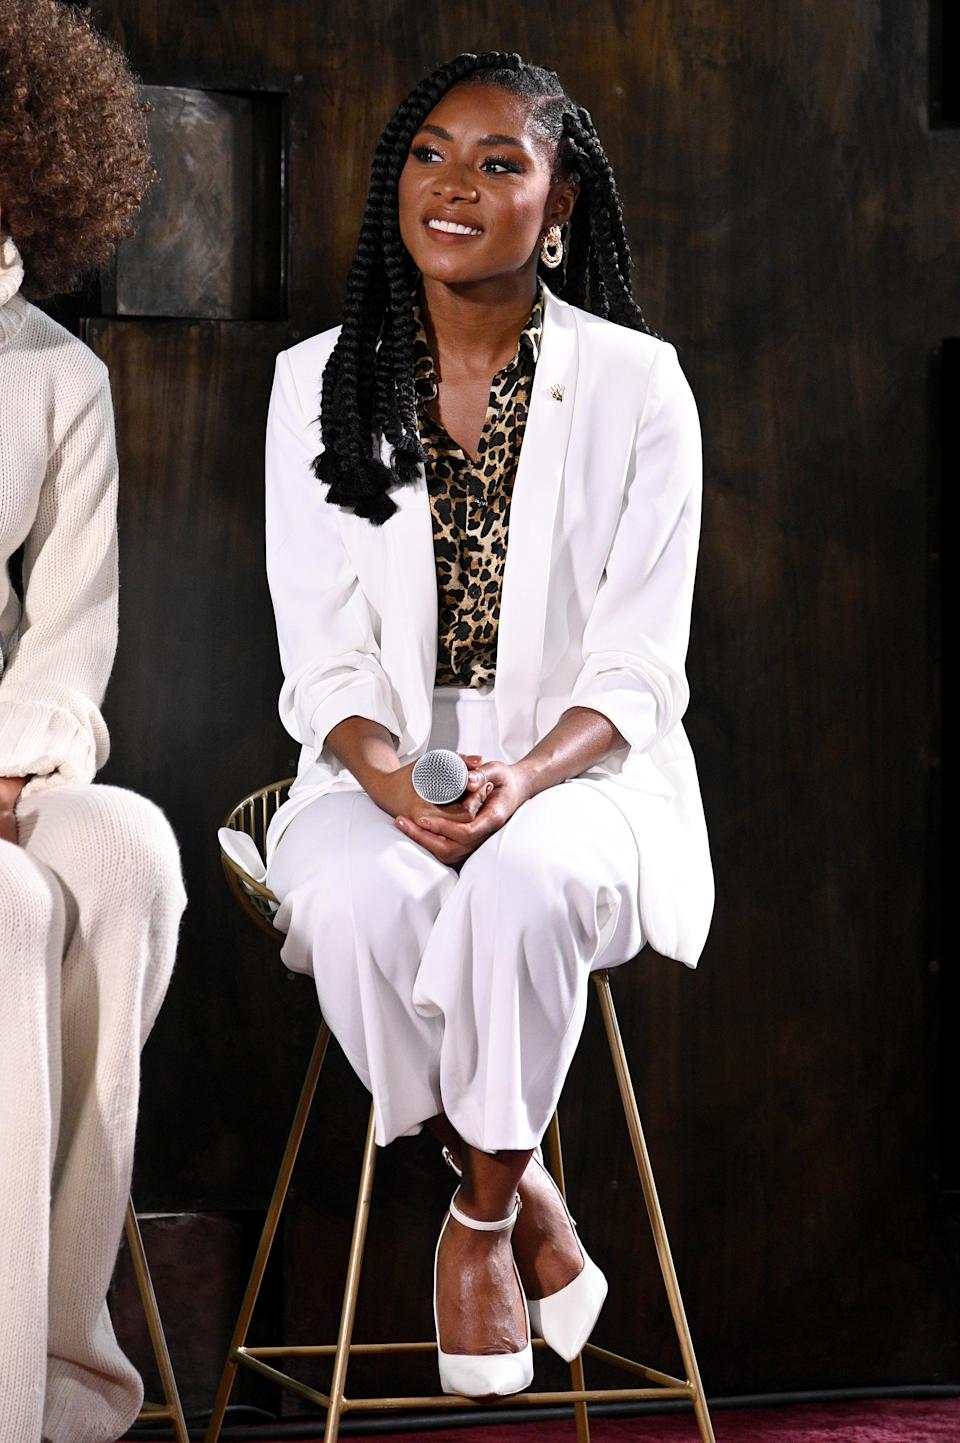 Miss America 2019 Nia Franklin speaks about facing criticism for not wearing her hair natural during her reign at NYFW: The Talks, The Evolving Standard of Beauty. (Photo by Bryan Bedder/Getty Images for IMG)